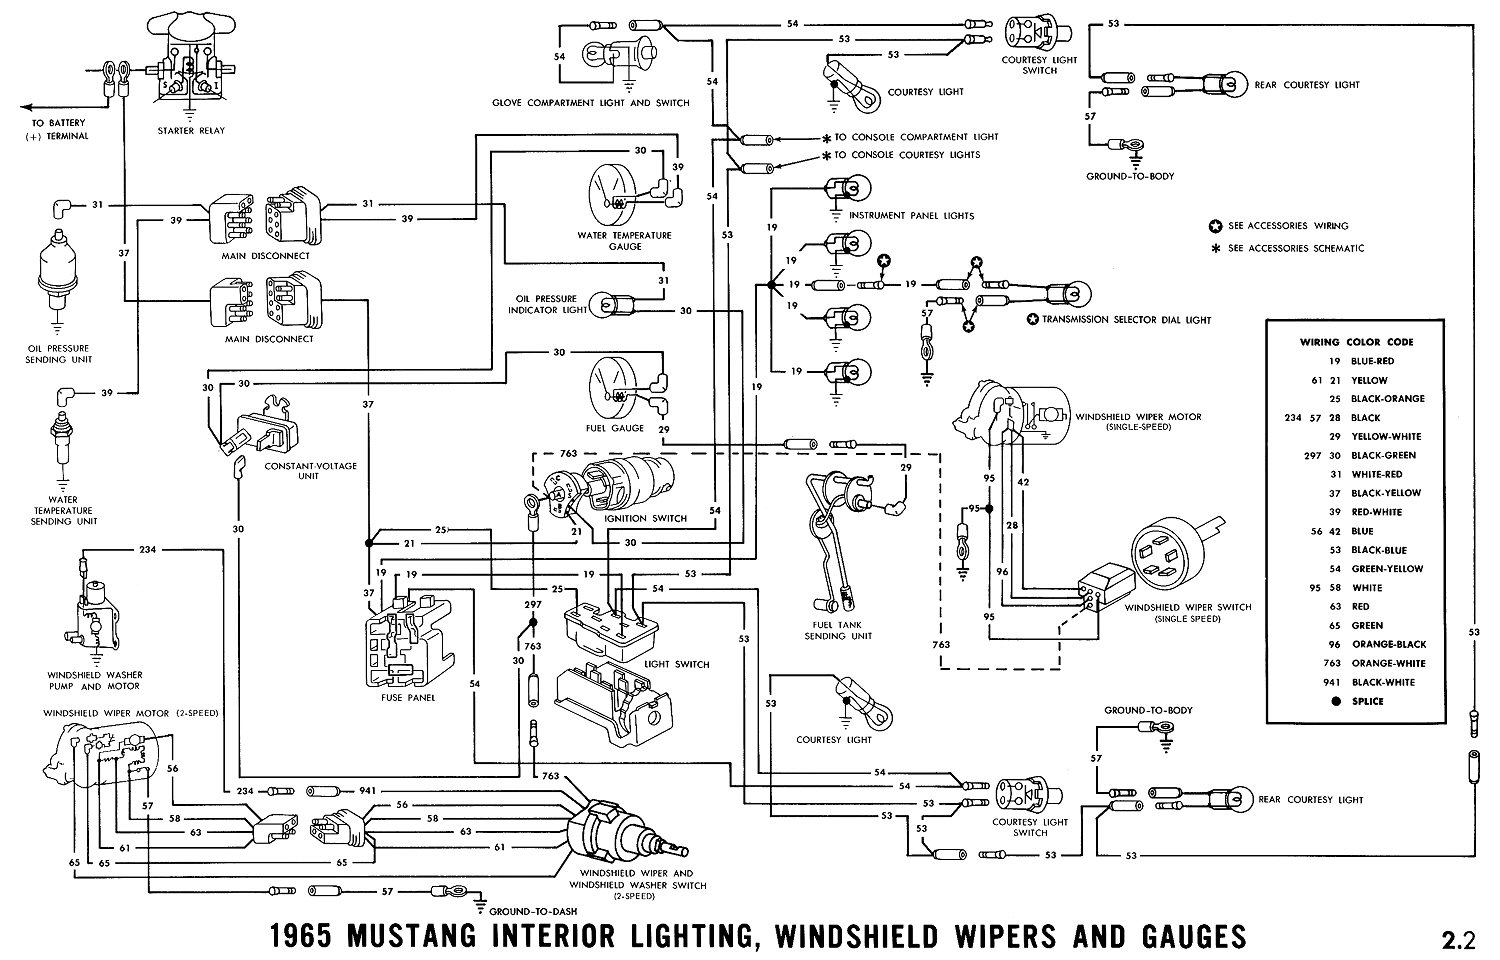 hight resolution of 1965 mustang wiring diagrams average joe restoration 65 mustang turn signal switch wiring diagram 65 mustang turn signal wiring diagram